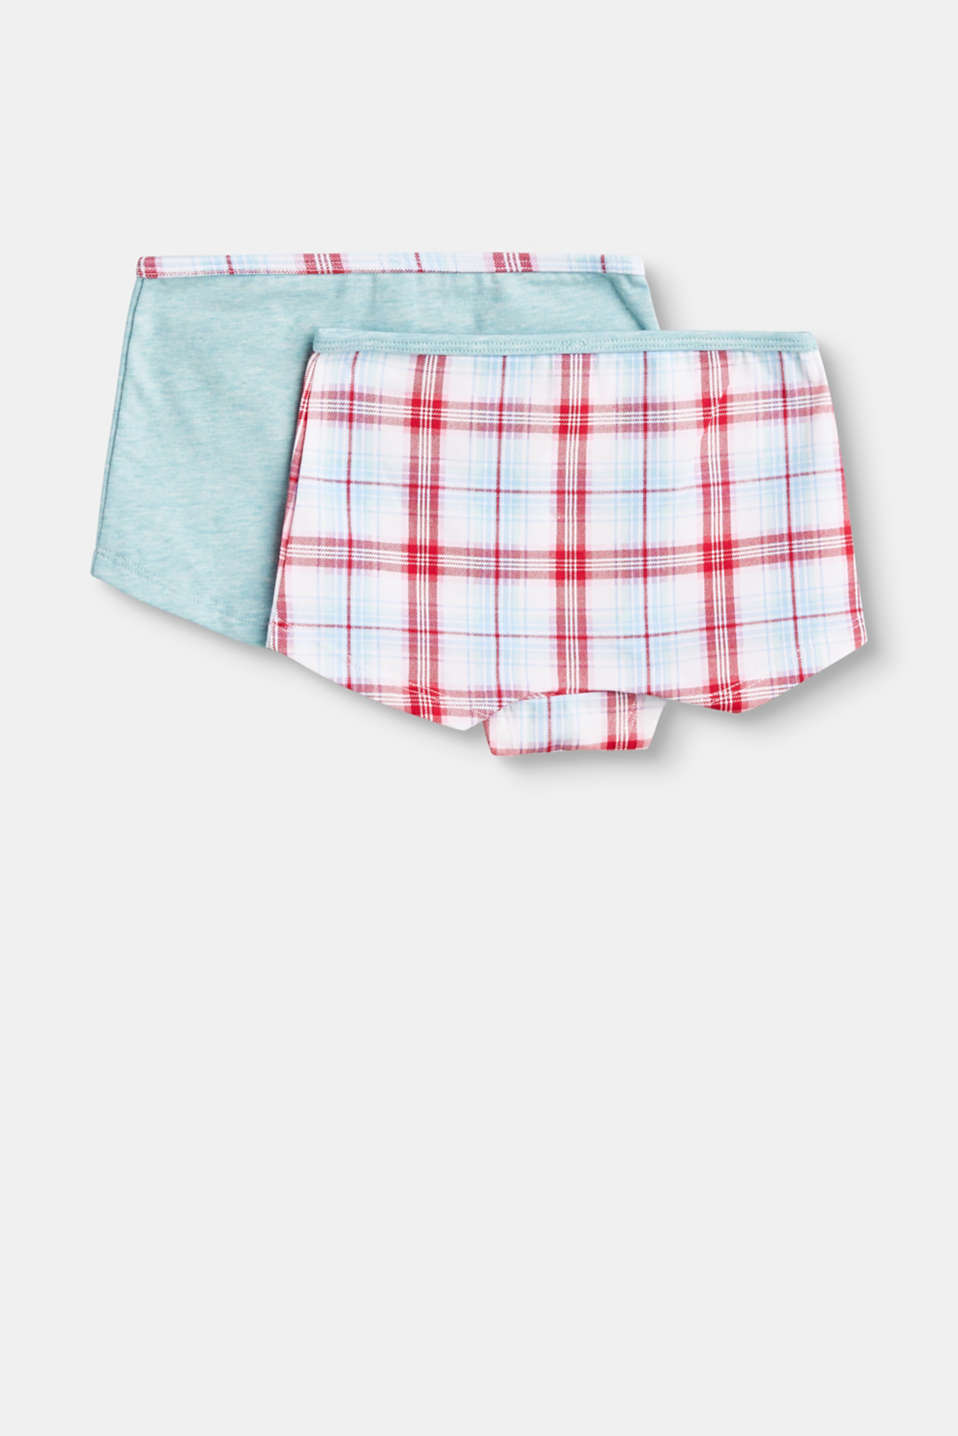 Shorts in a practical double pack